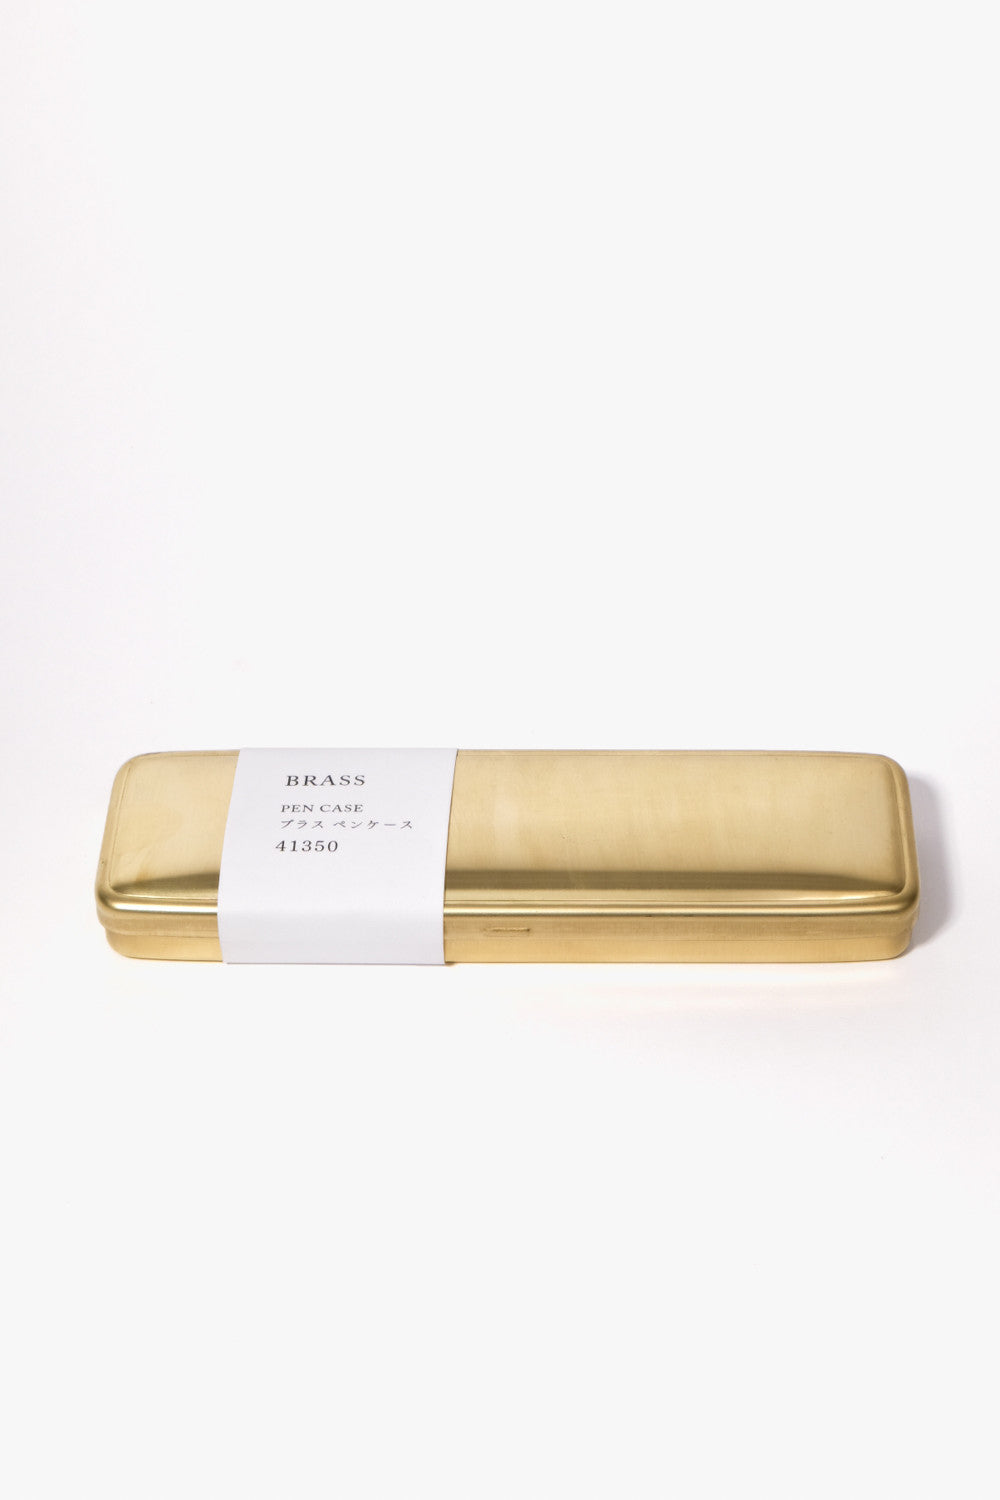 Pencase Solid Brass, Office, Midori - Six and Sons